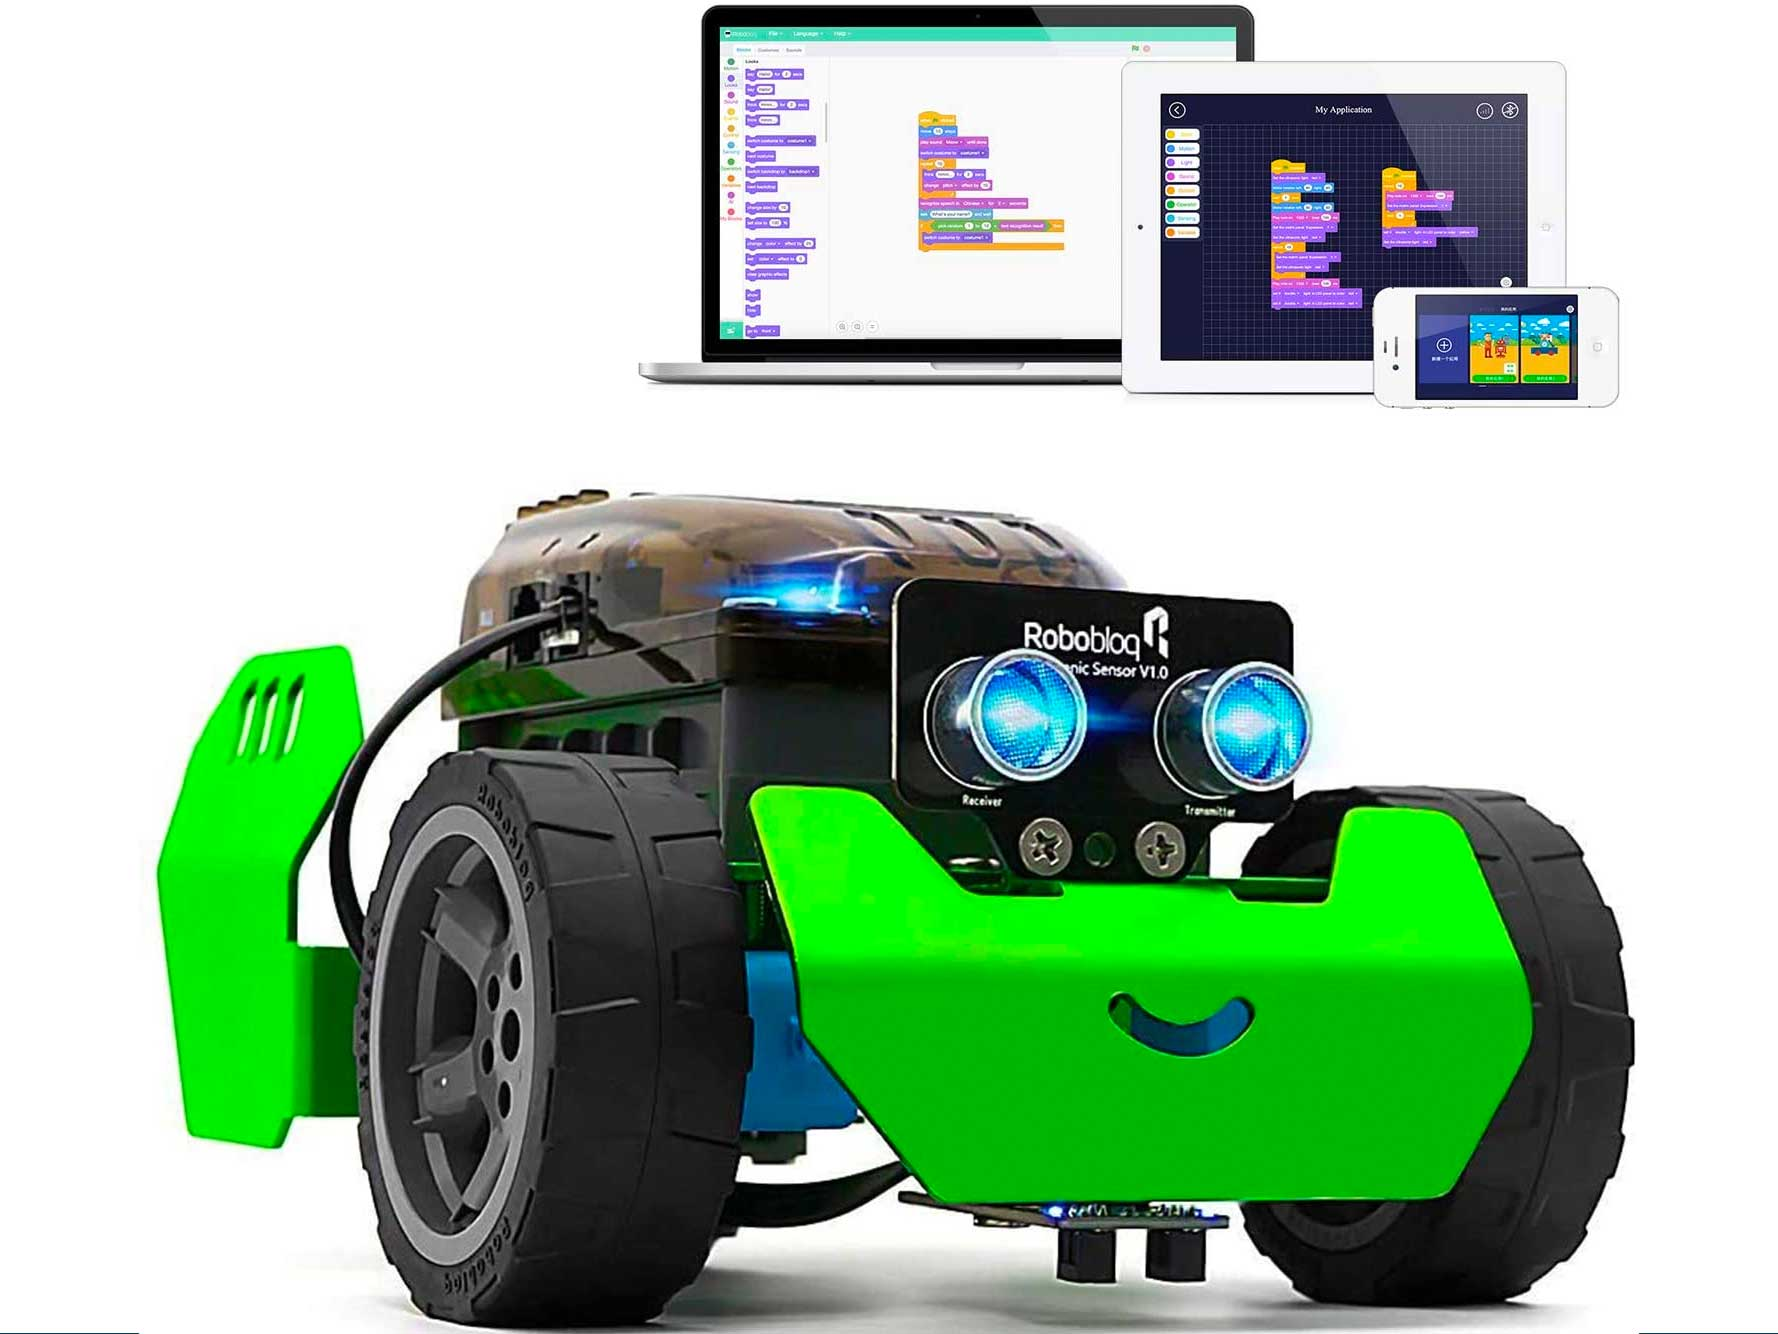 Robobloq STEM Metal Q-Scout Robot Mechanic Kit with Remote Control, Line Tracking, Ultrasonic Sensor, Music Playing for Kids Program Learning of Scratch, Arduino and Python(Basic Version)